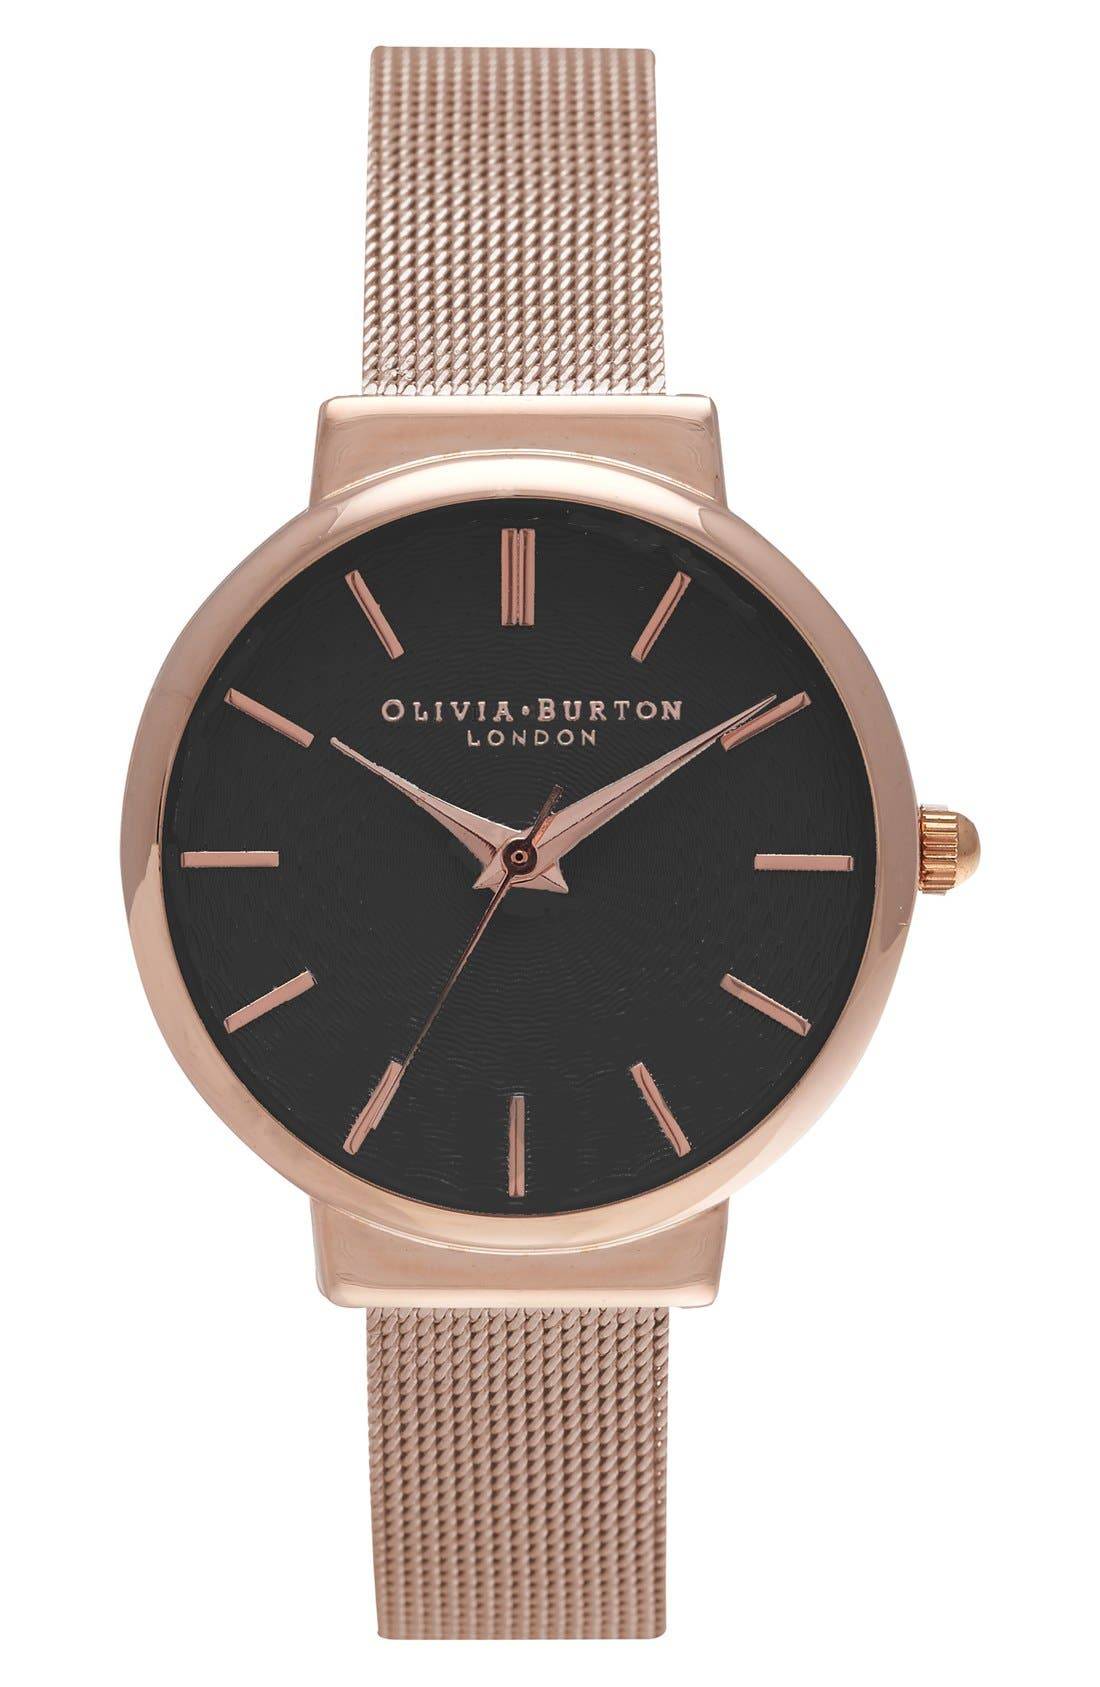 OLIVIA BURTON 'The Hackney' Mesh Strap Watch, 29mm